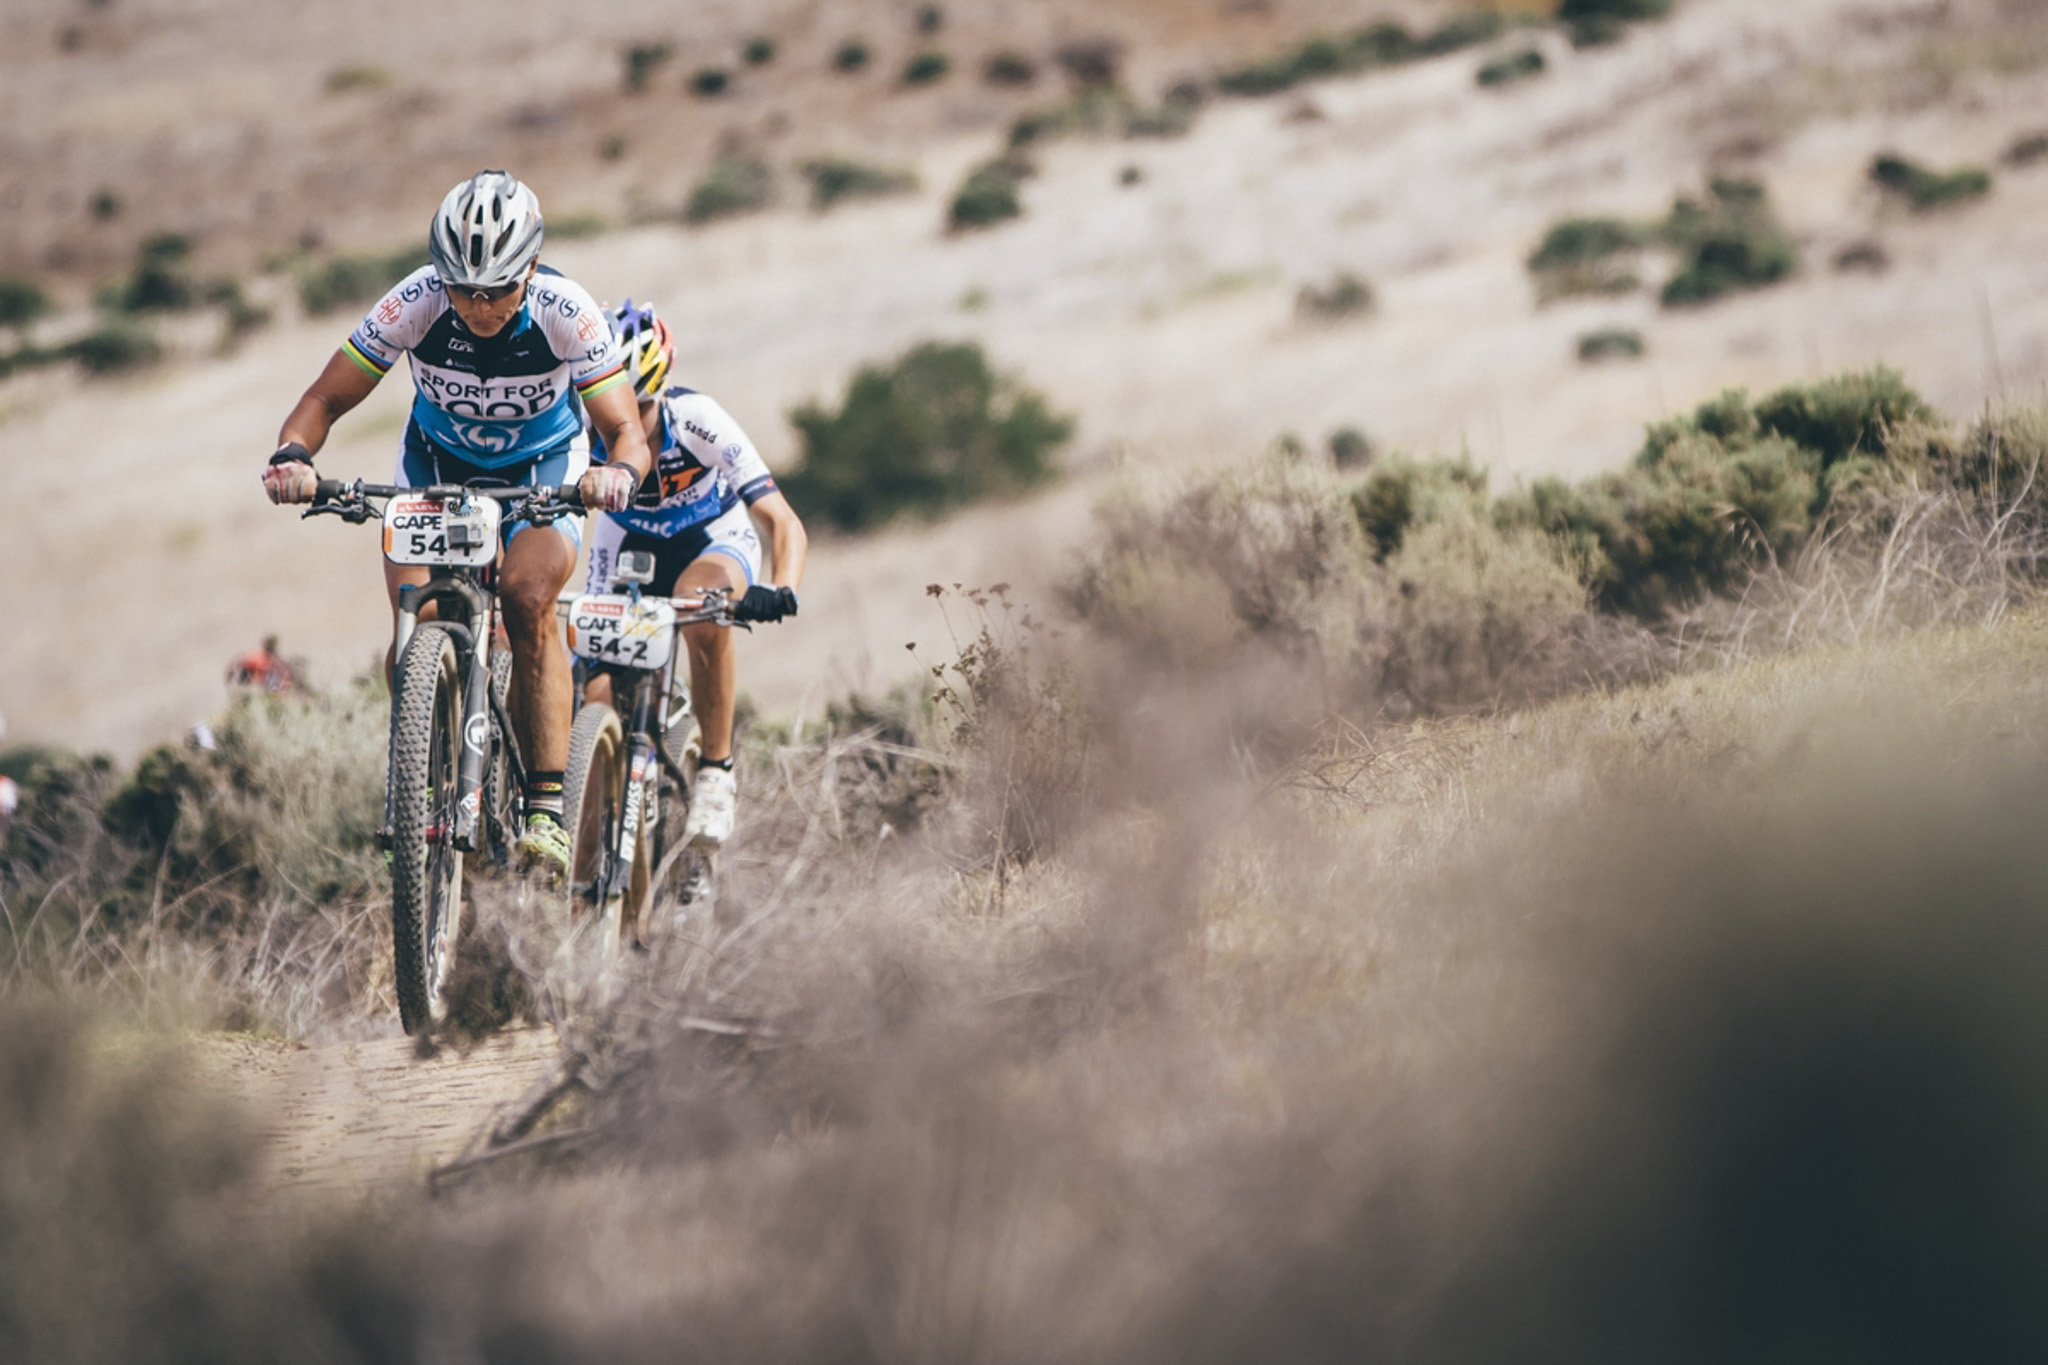 Team Sport for Good's Sabine Spitz and Yana Belomoina on their way to stage victory during the final stage (stage 7) of the 2016 Absa Cape Epic Mountain Bike stage race from Boschendal in Stellenbosch to Meerendal Wine Estate in Durbanville, South Africa on the 20th March 2016 Photo by Ewald Sadie/Cape Epic/SPORTZPICS PLEASE ENSURE THE APPROPRIATE CREDIT IS GIVEN TO THE PHOTOGRAPHER AND SPORTZPICS ALONG WITH THE ABSA CAPE EPIC ace2016